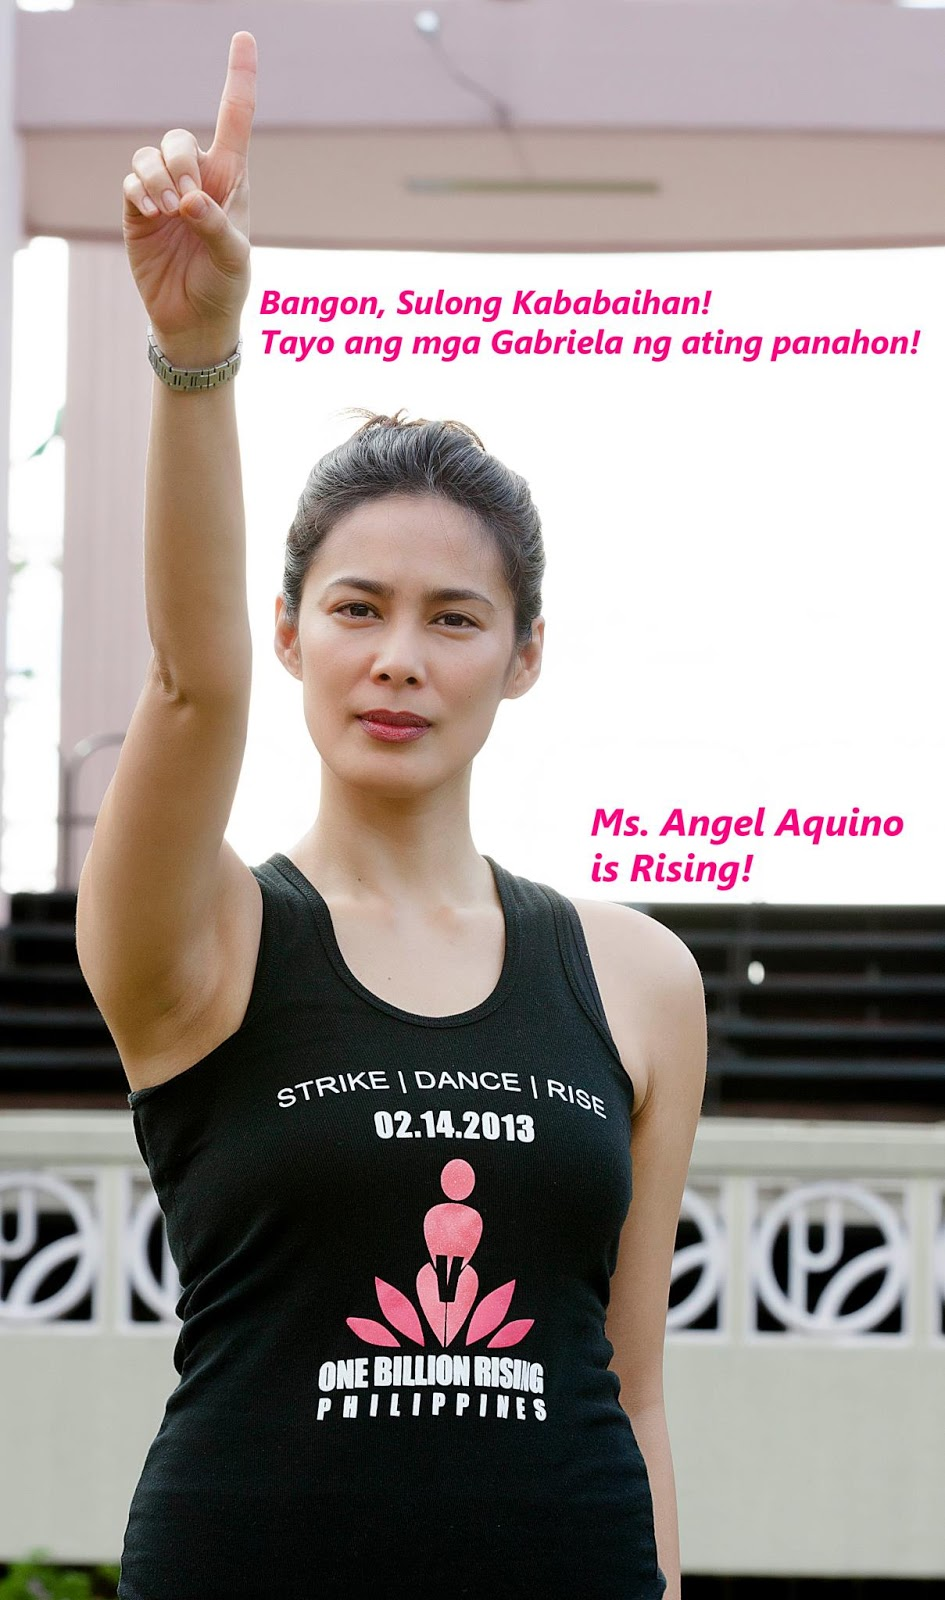 The Philippines Joins Eve Ensler's ONE BILLION RISING Today